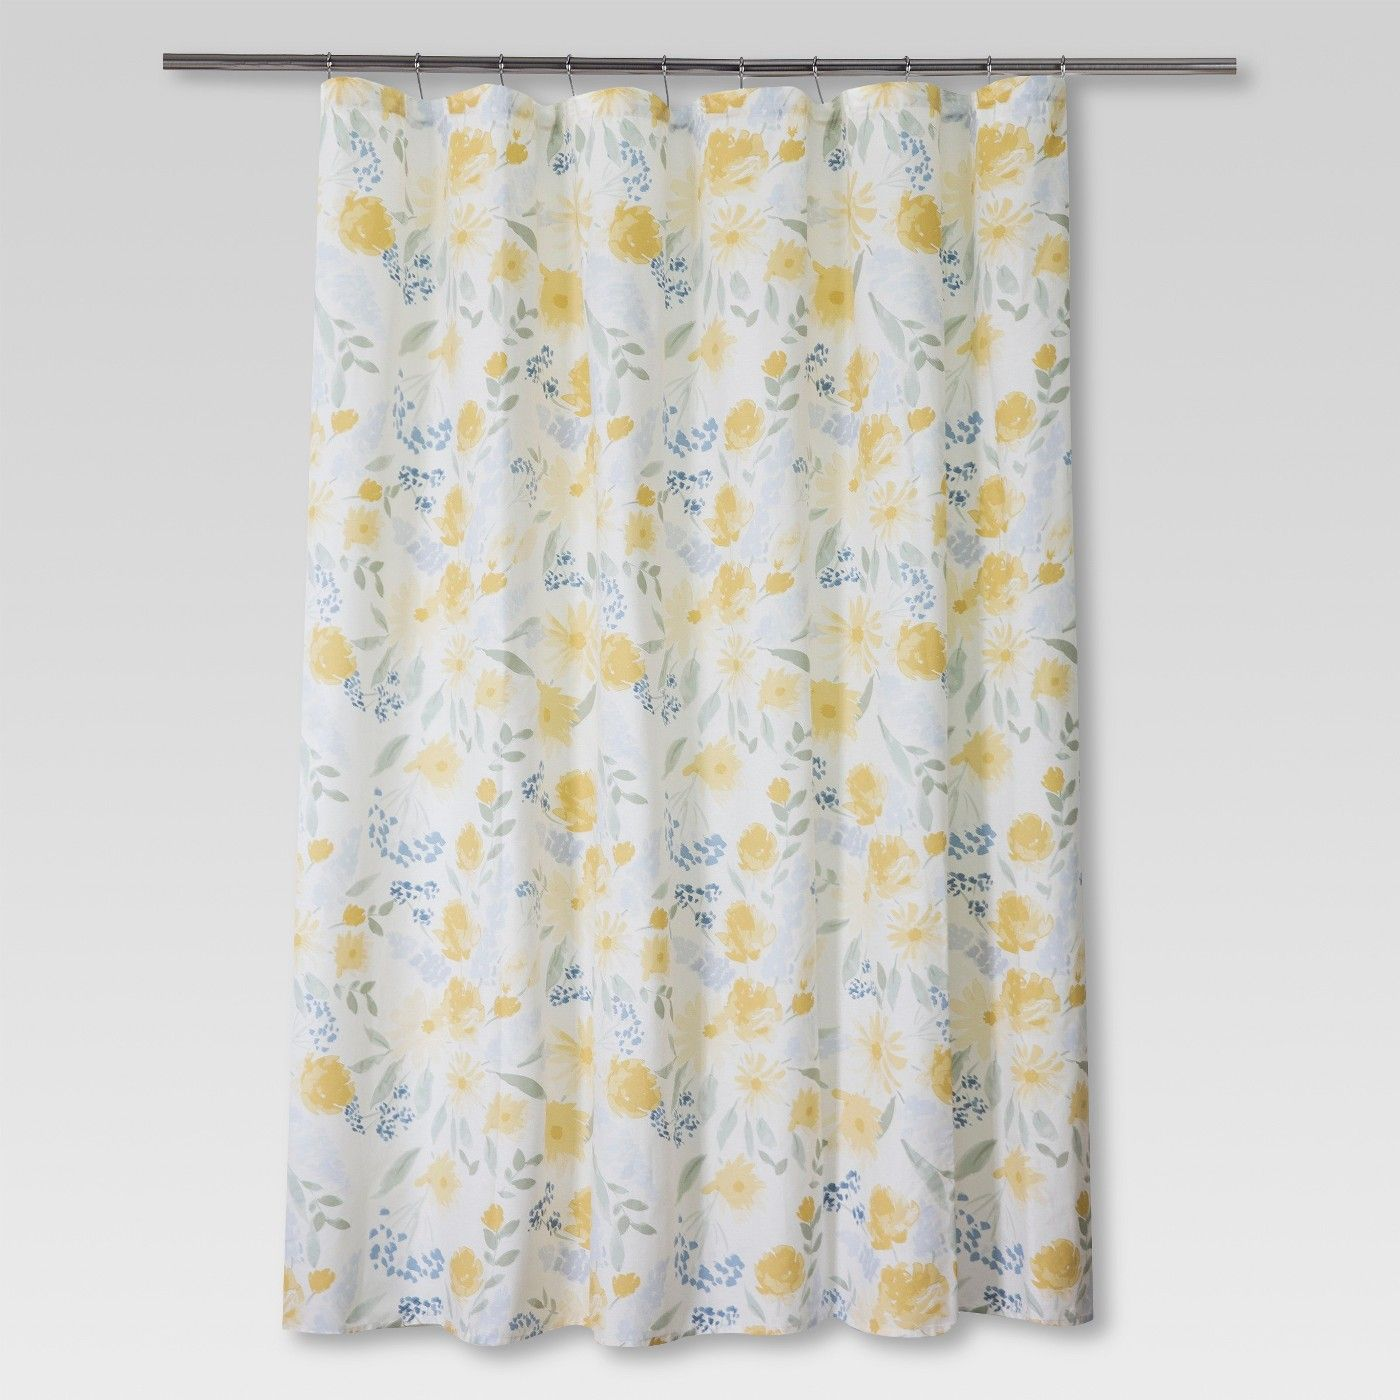 Floral Shower Curtain Yellow Blue Threshold Image 1 Of 1